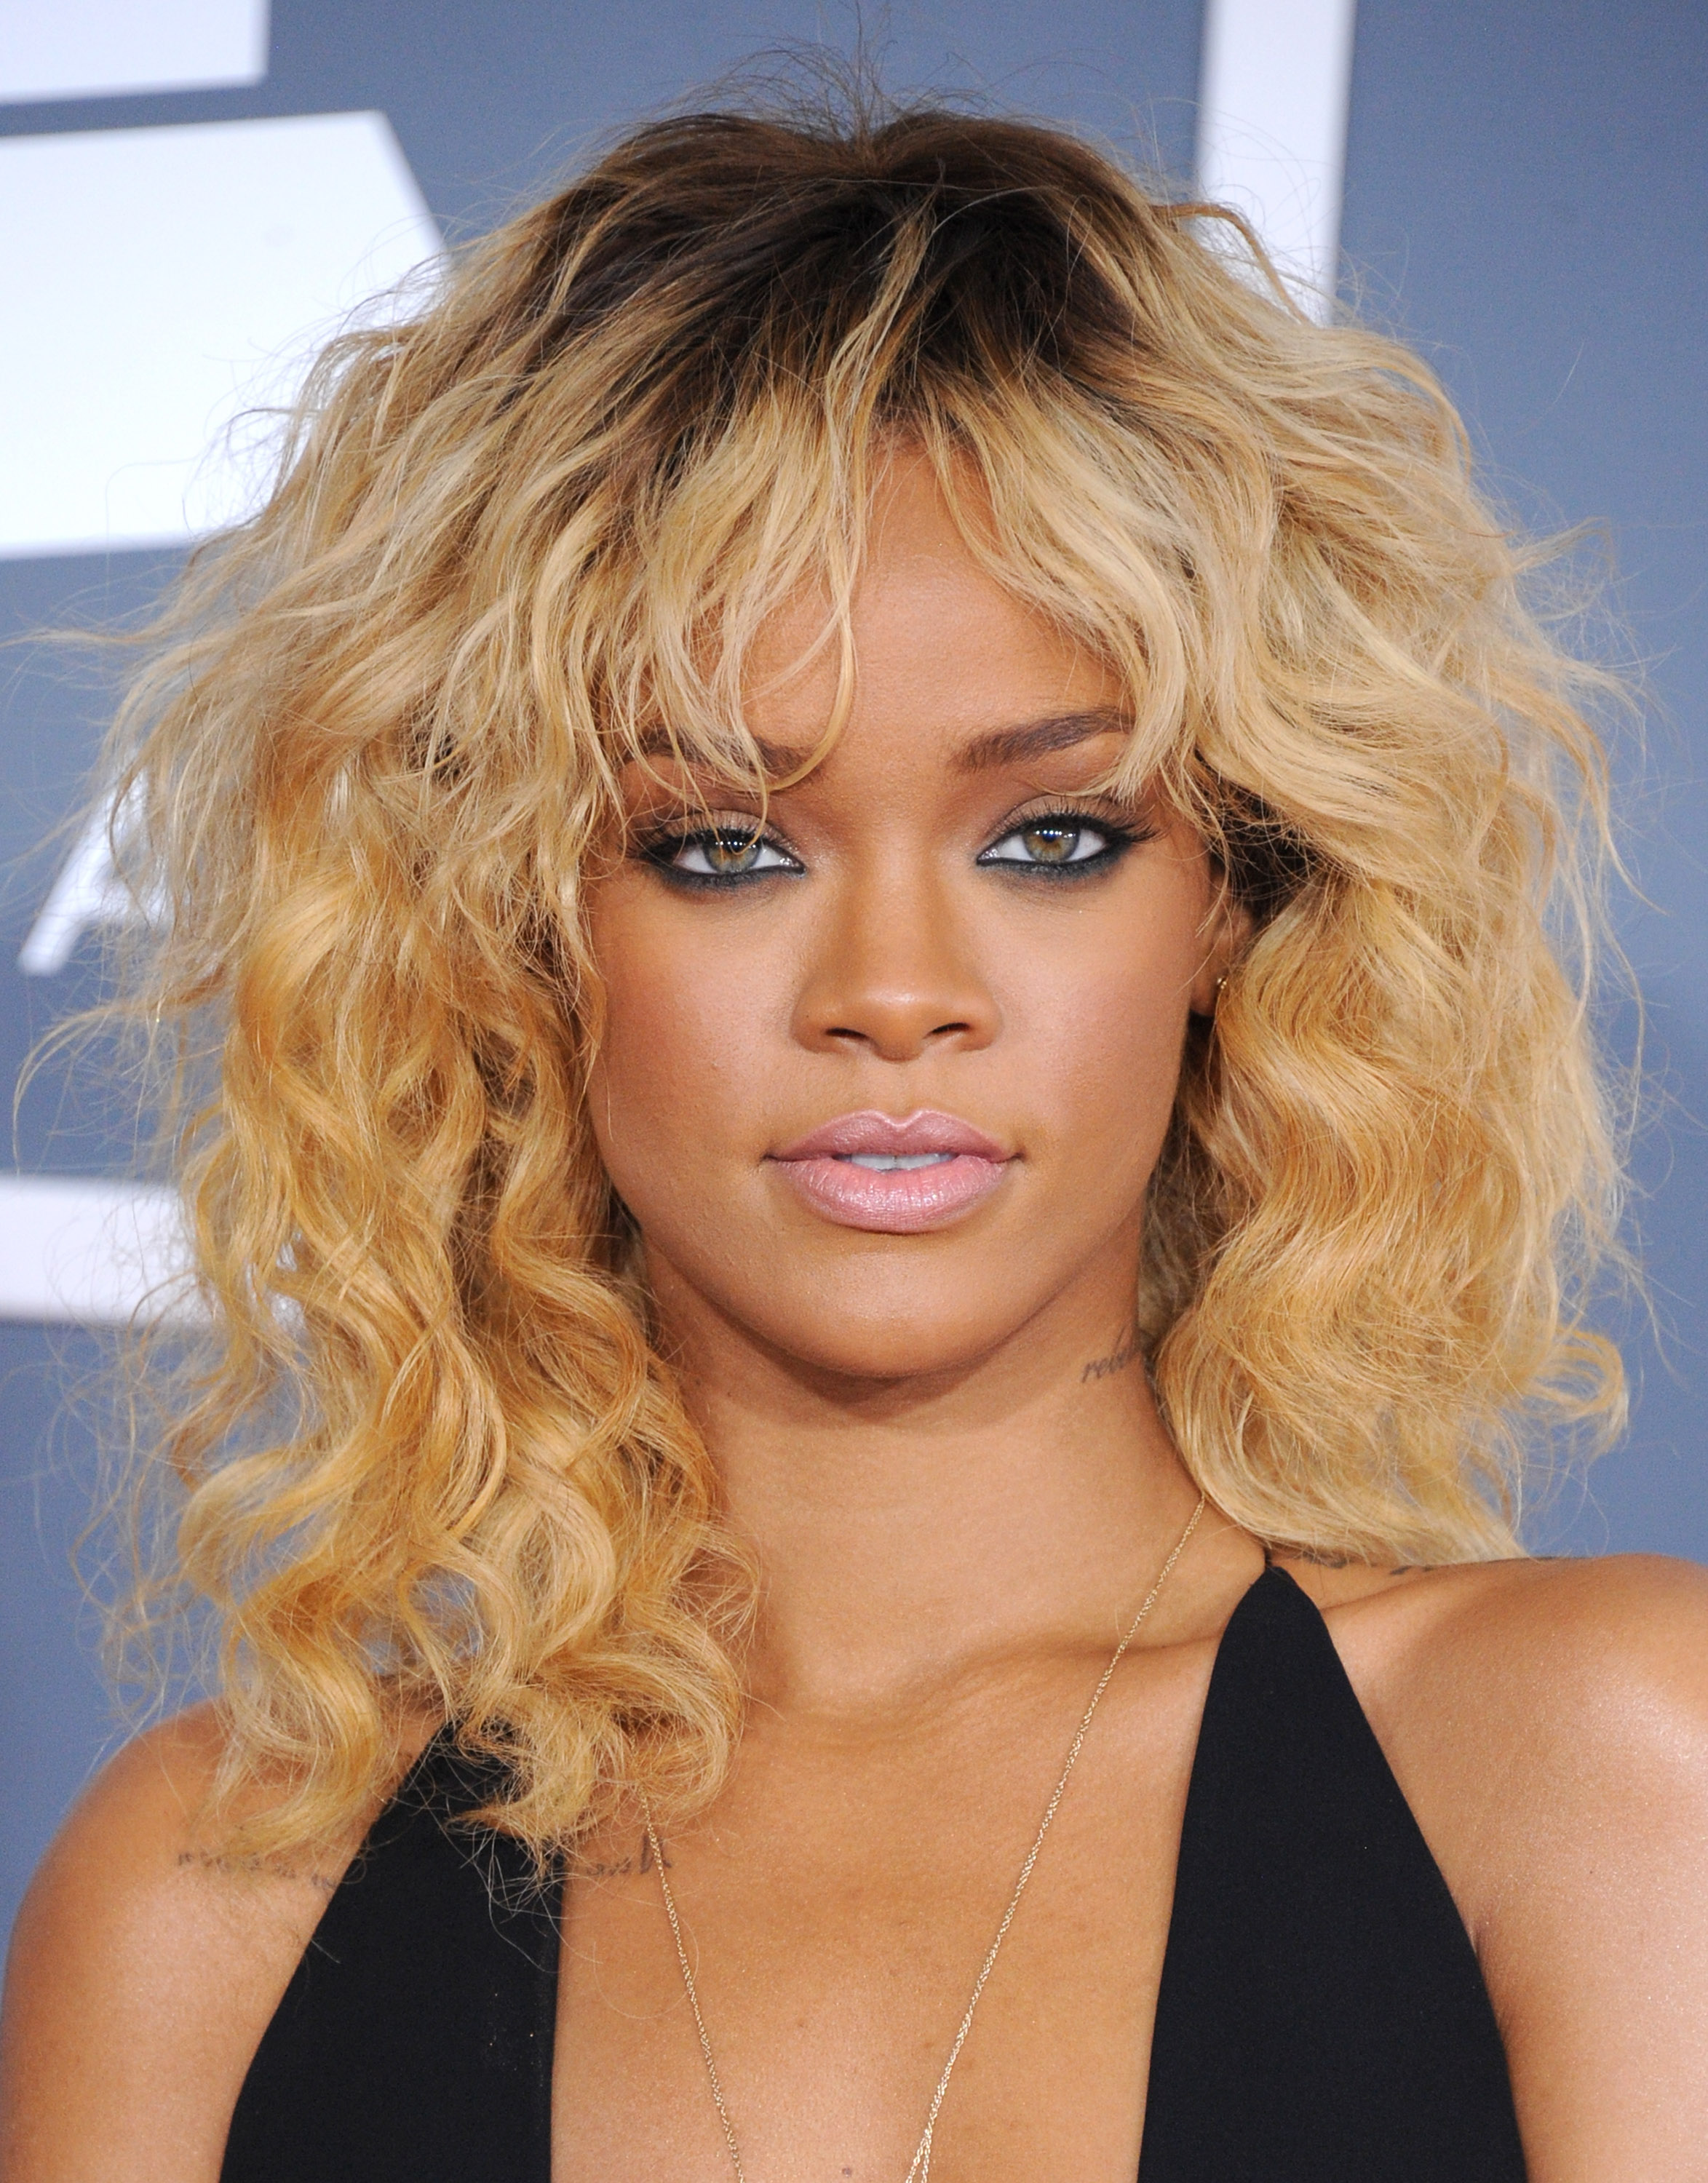 Admirable 25 Hairstyles With Bangs Photos Of Celebrity Haircuts With Bangs Short Hairstyles For Black Women Fulllsitofus